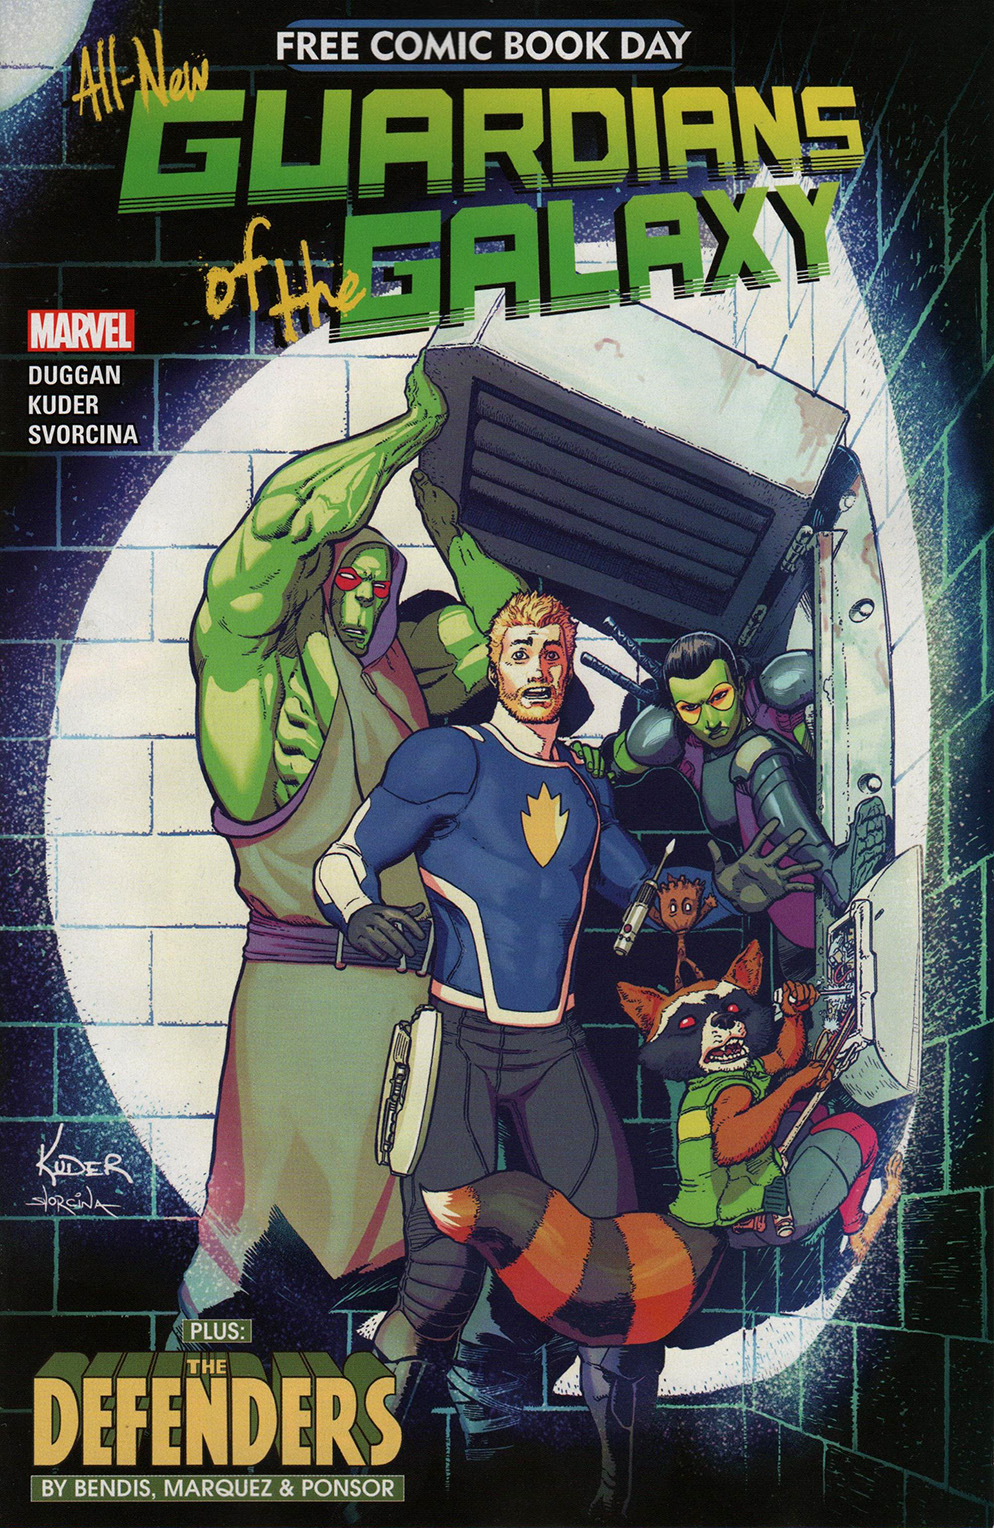 Read online Free Comic Book Day 2017 comic -  Issue # All-New Guardians of the Galaxy - 1